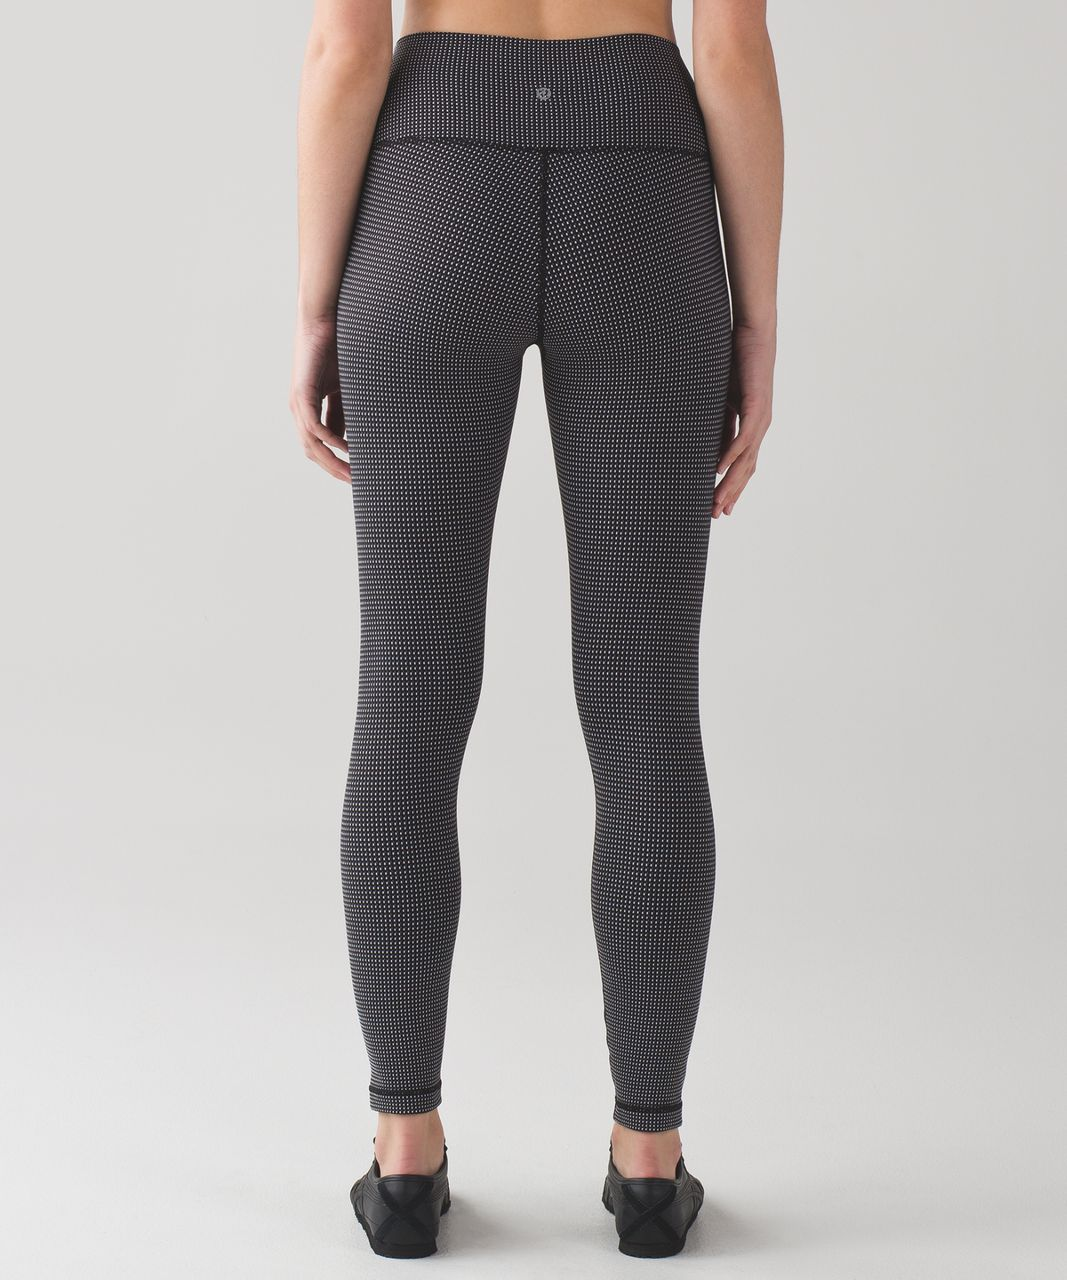 Lululemon High Times Pant - Teeny Check White Black